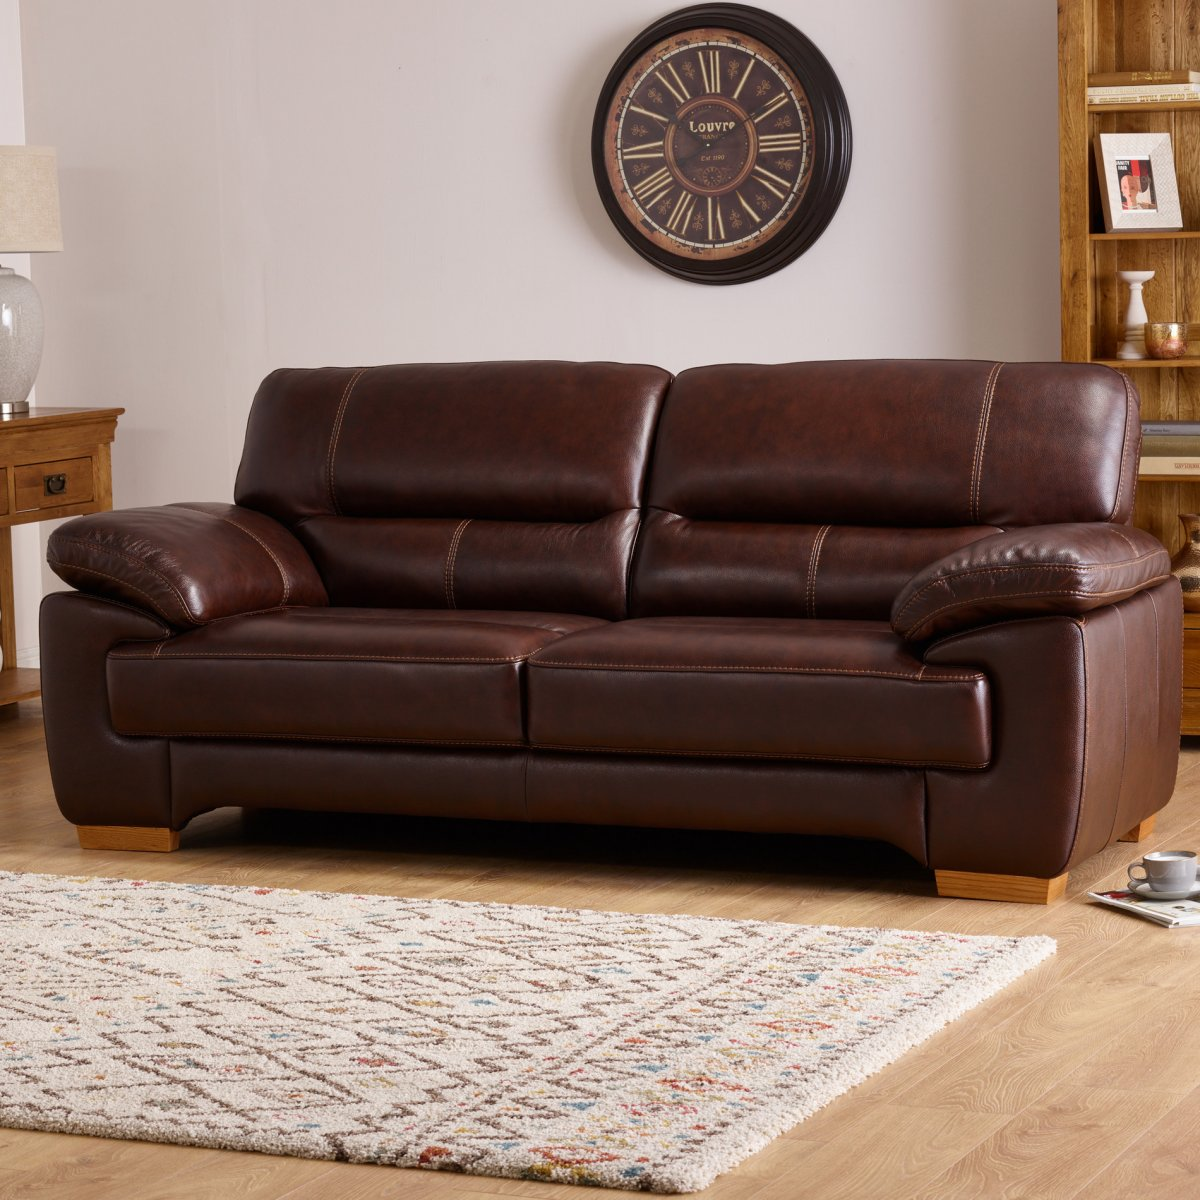 Sofas Leather: Clayton 2 Seater Sofa In Brown Leather